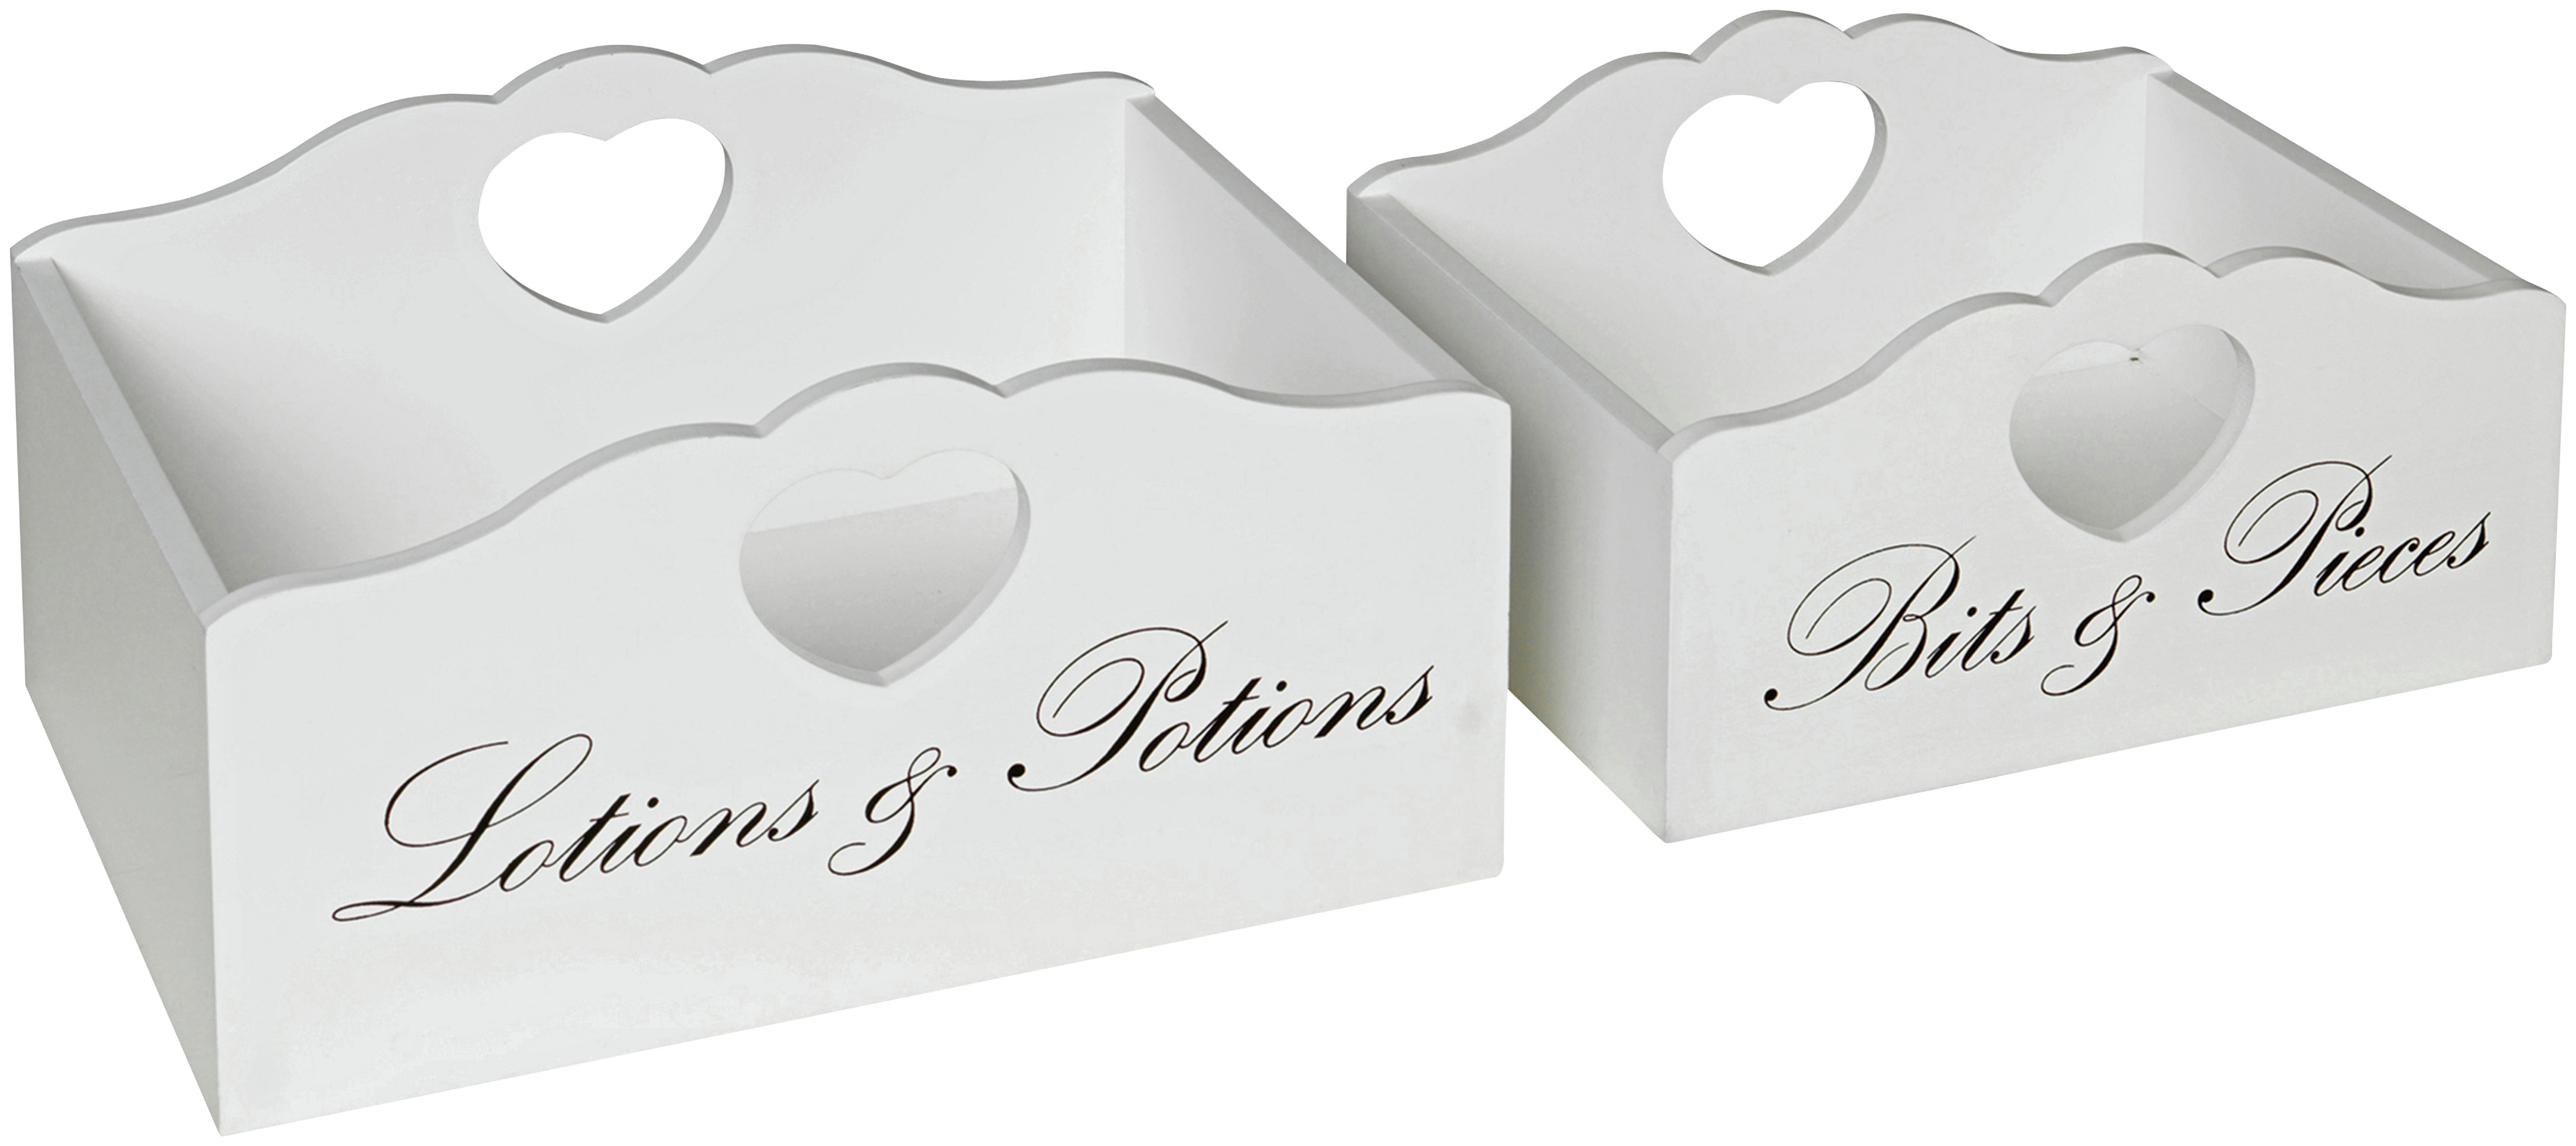 Heart of House Clarisse Script Set of 2 Storage Boxes